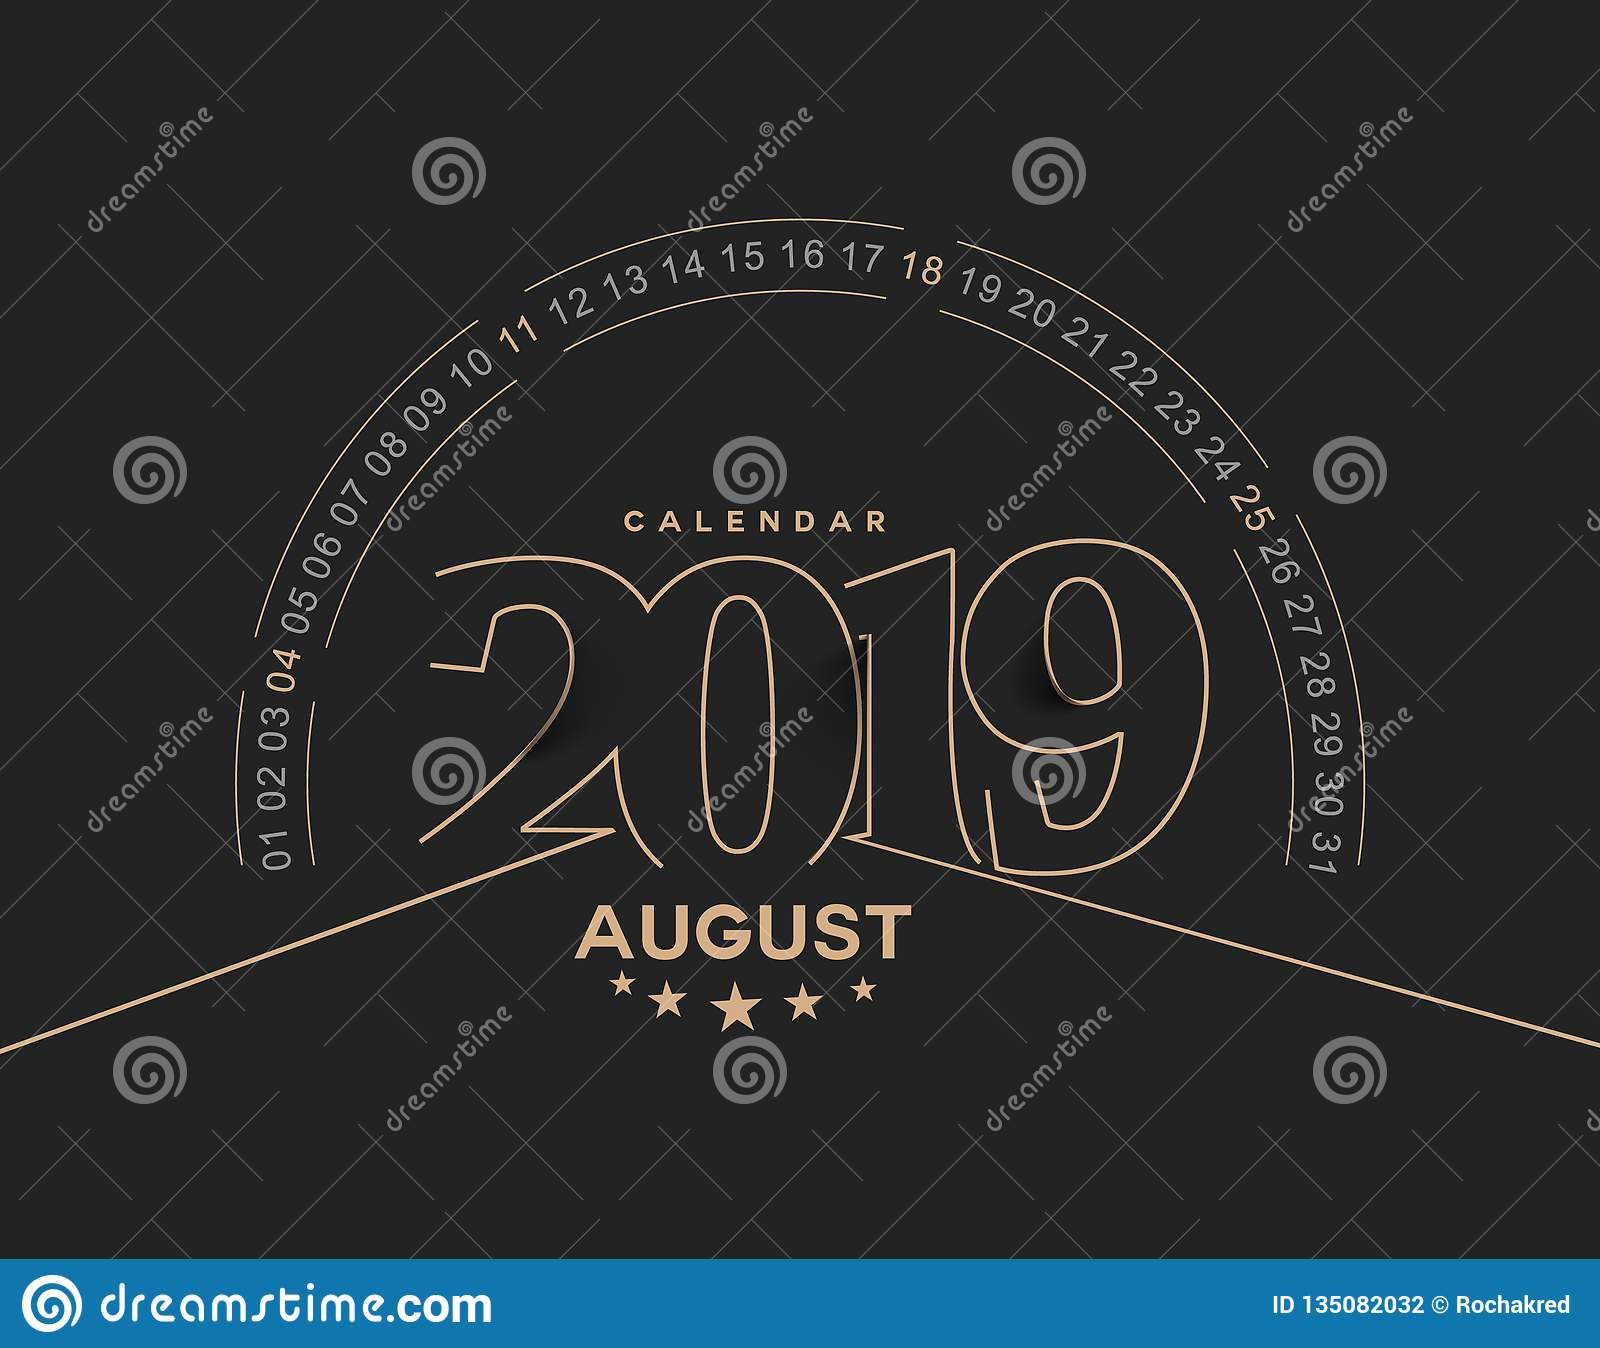 Happy new year 2019 August Calendar - New Year Holiday design elements for holiday cards, calendar banner poster for decorations,